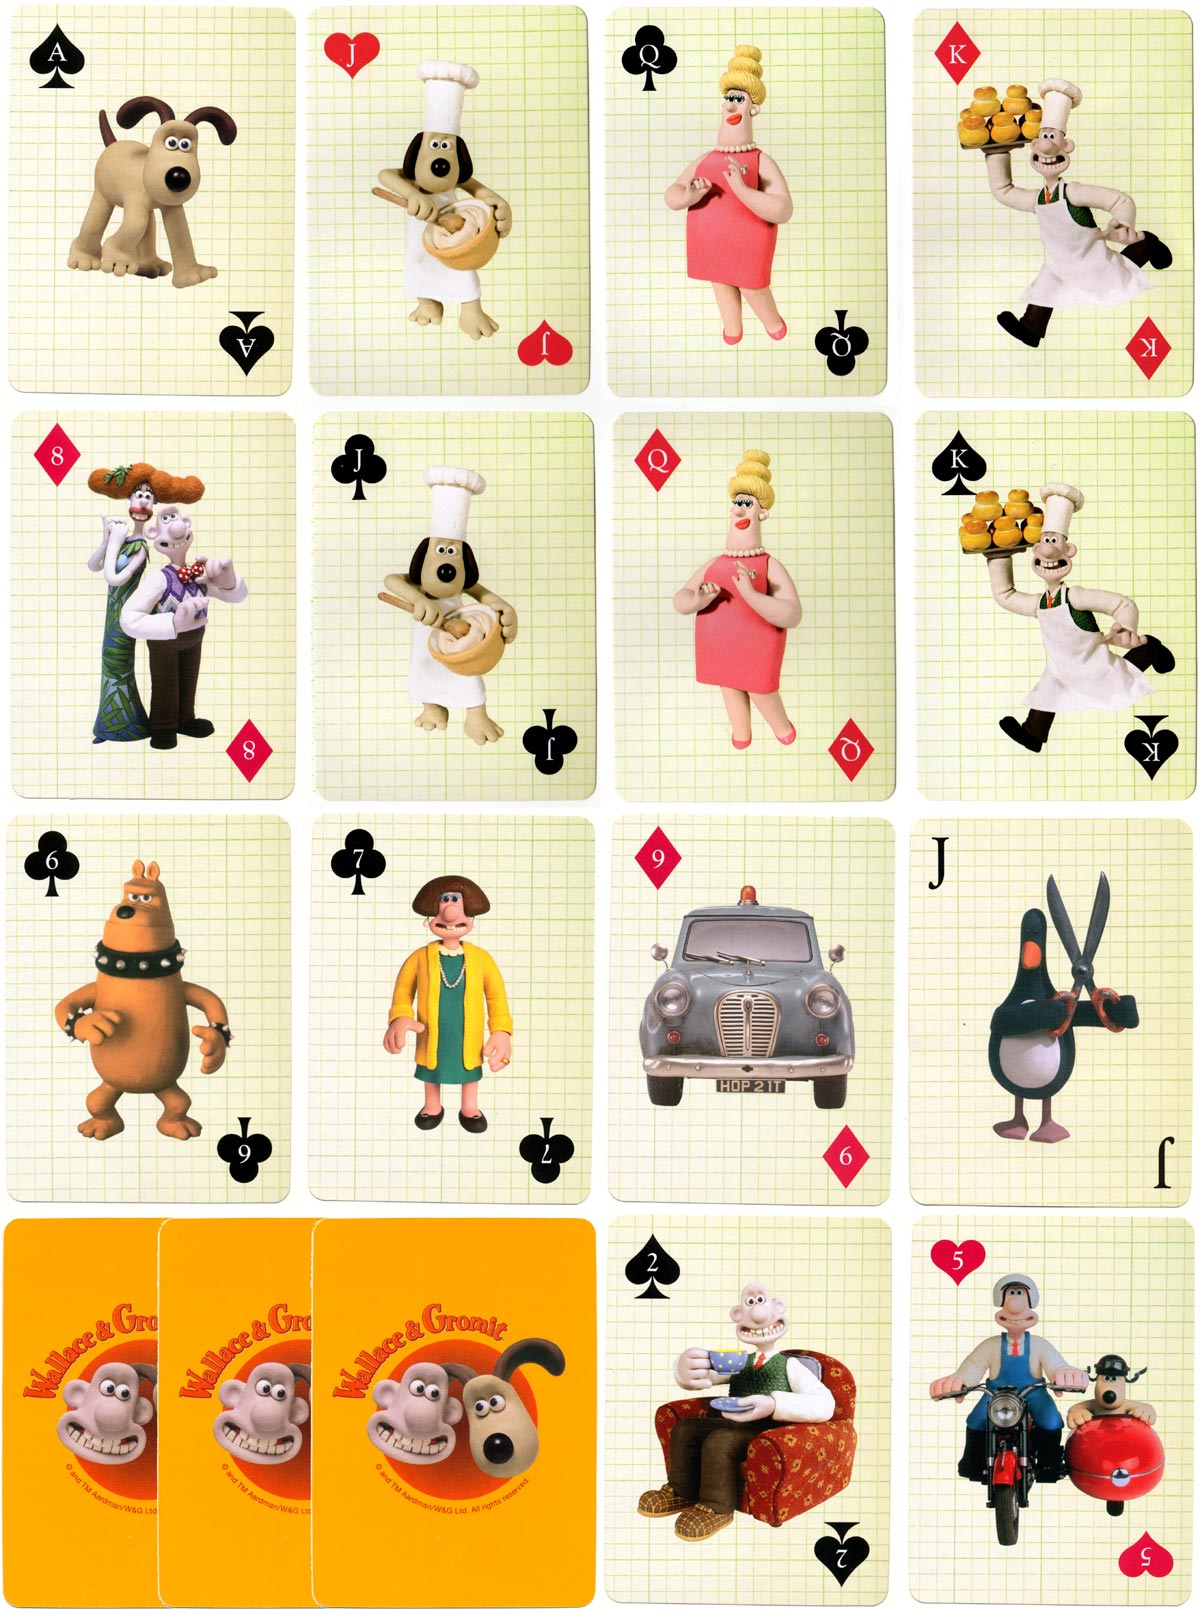 Wallace & Gromit playing cards published by Marks & Spencer, 2009